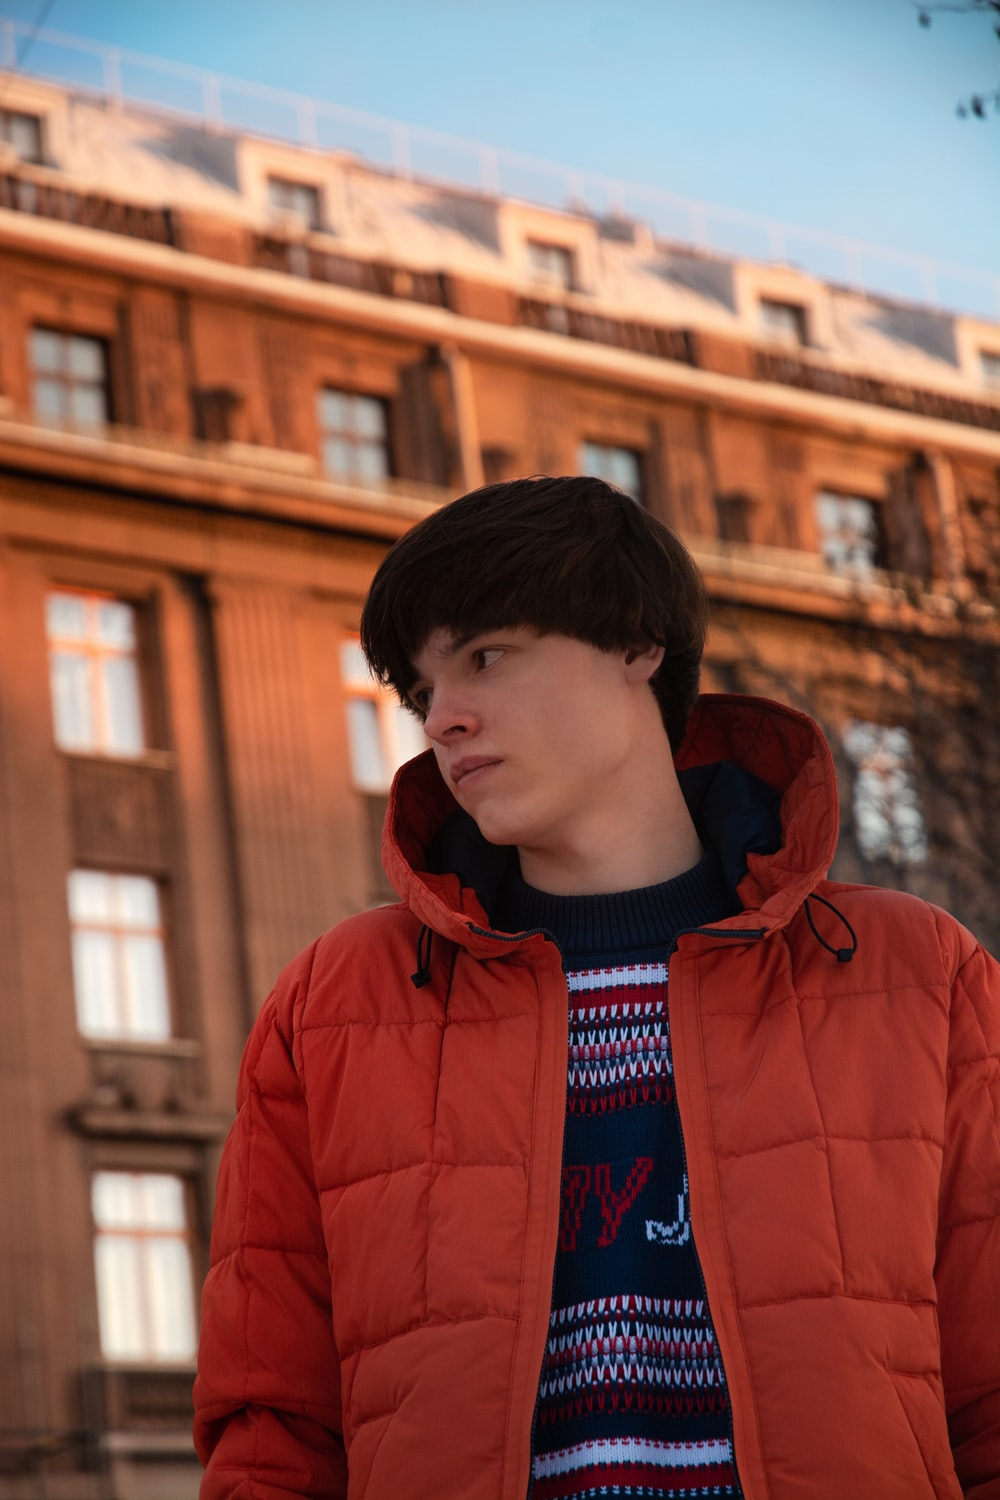 boy in red hoodie standing near brown building during daytime